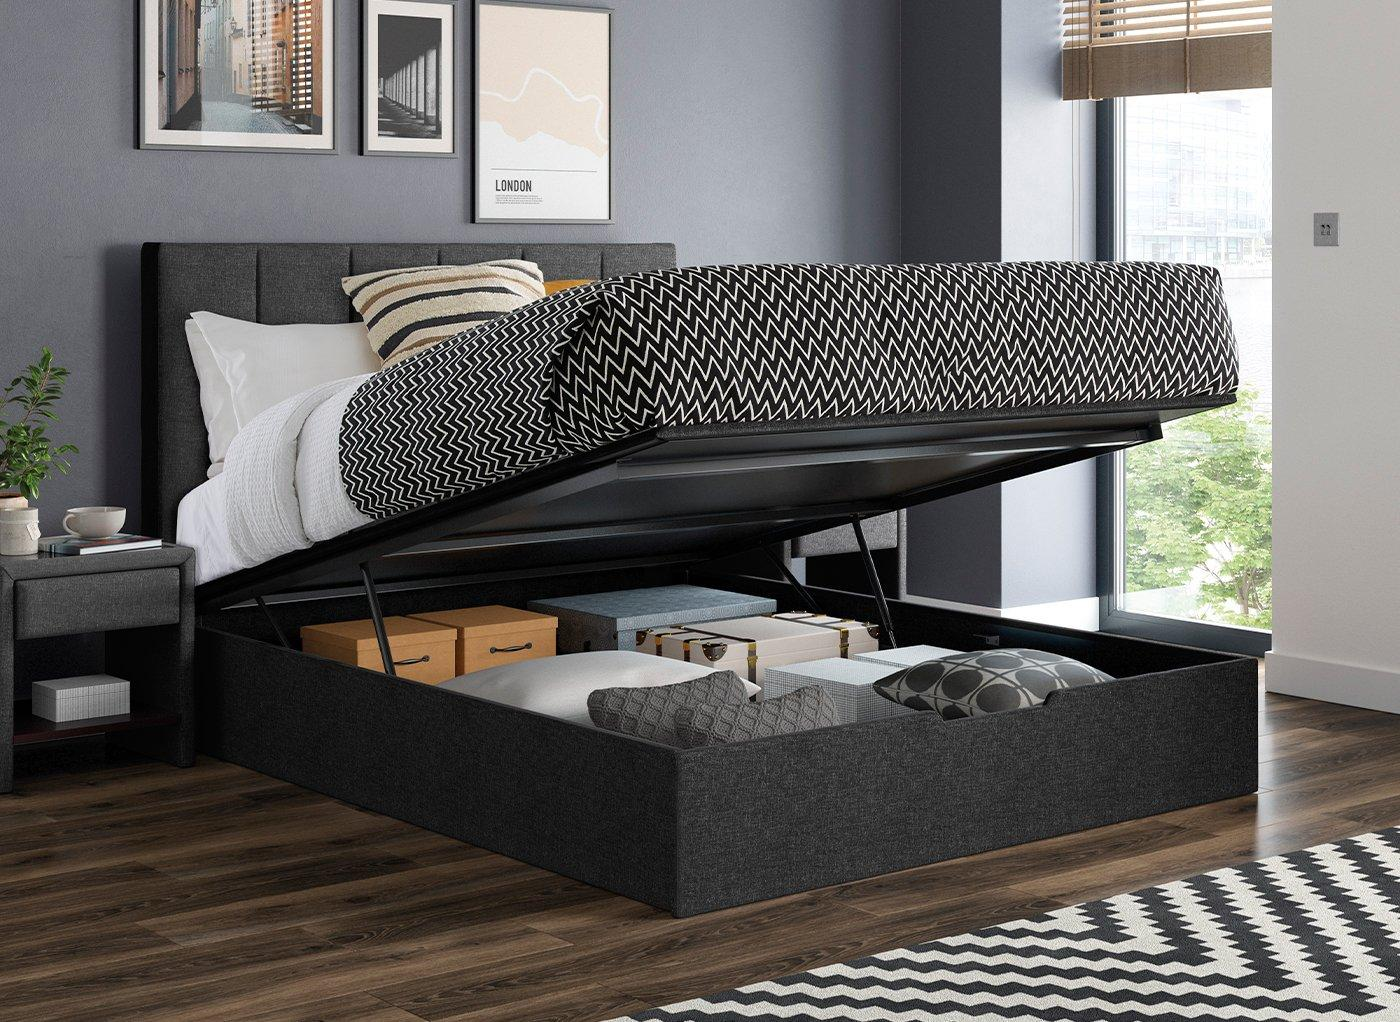 Ealing Grey Ottoman Bed Frame 4'0 Small double